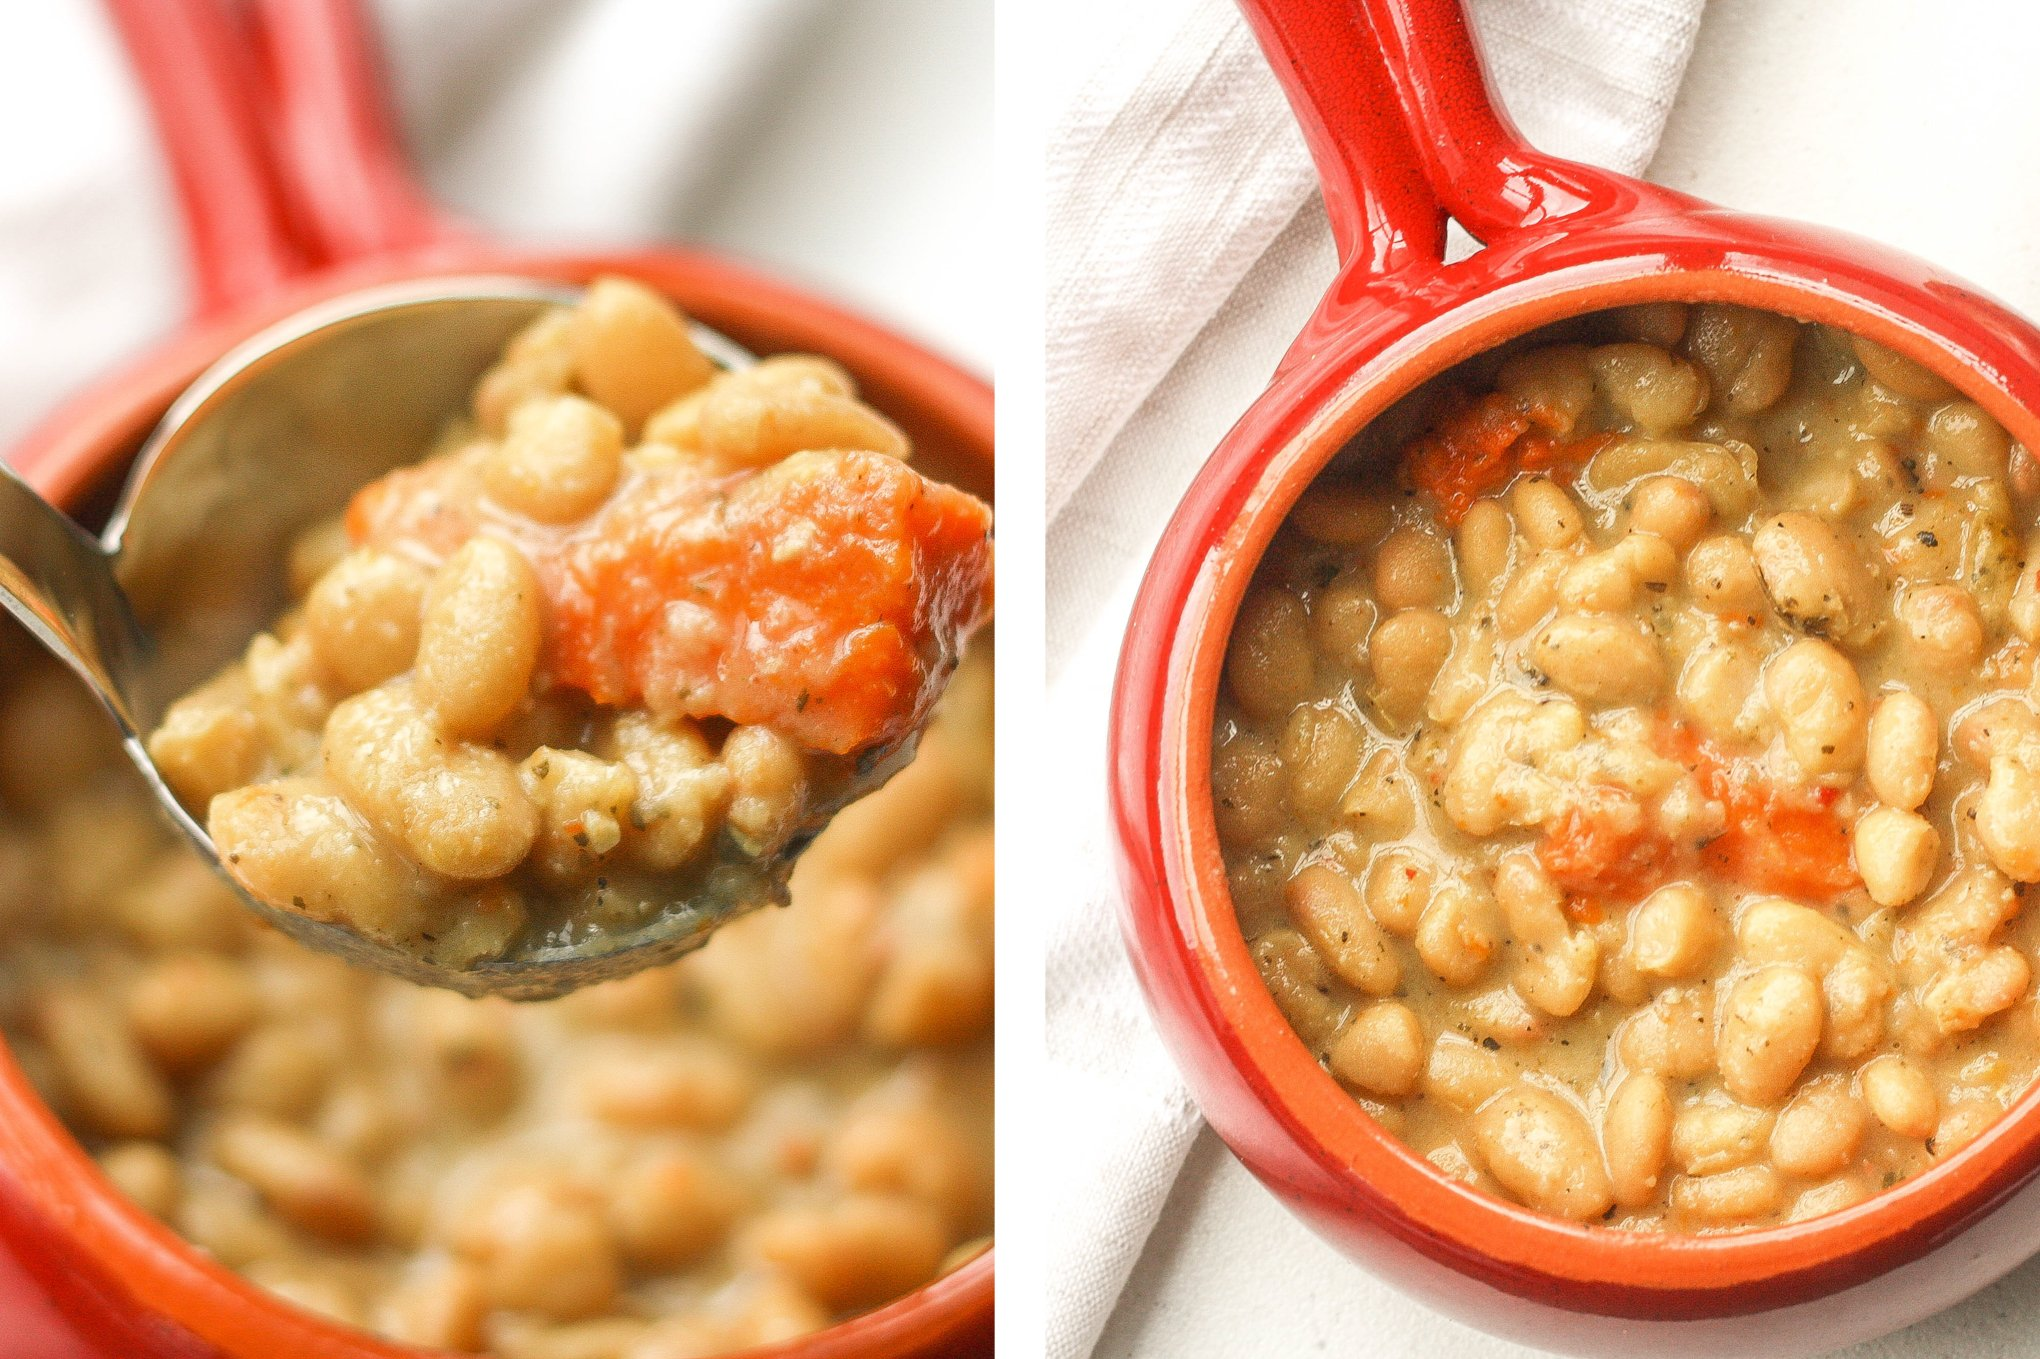 Lima beans don't have to be boring and bland. Bring them to life by making them tasty and full of flavour with this easy to follow recipe | aheadofthyme.com